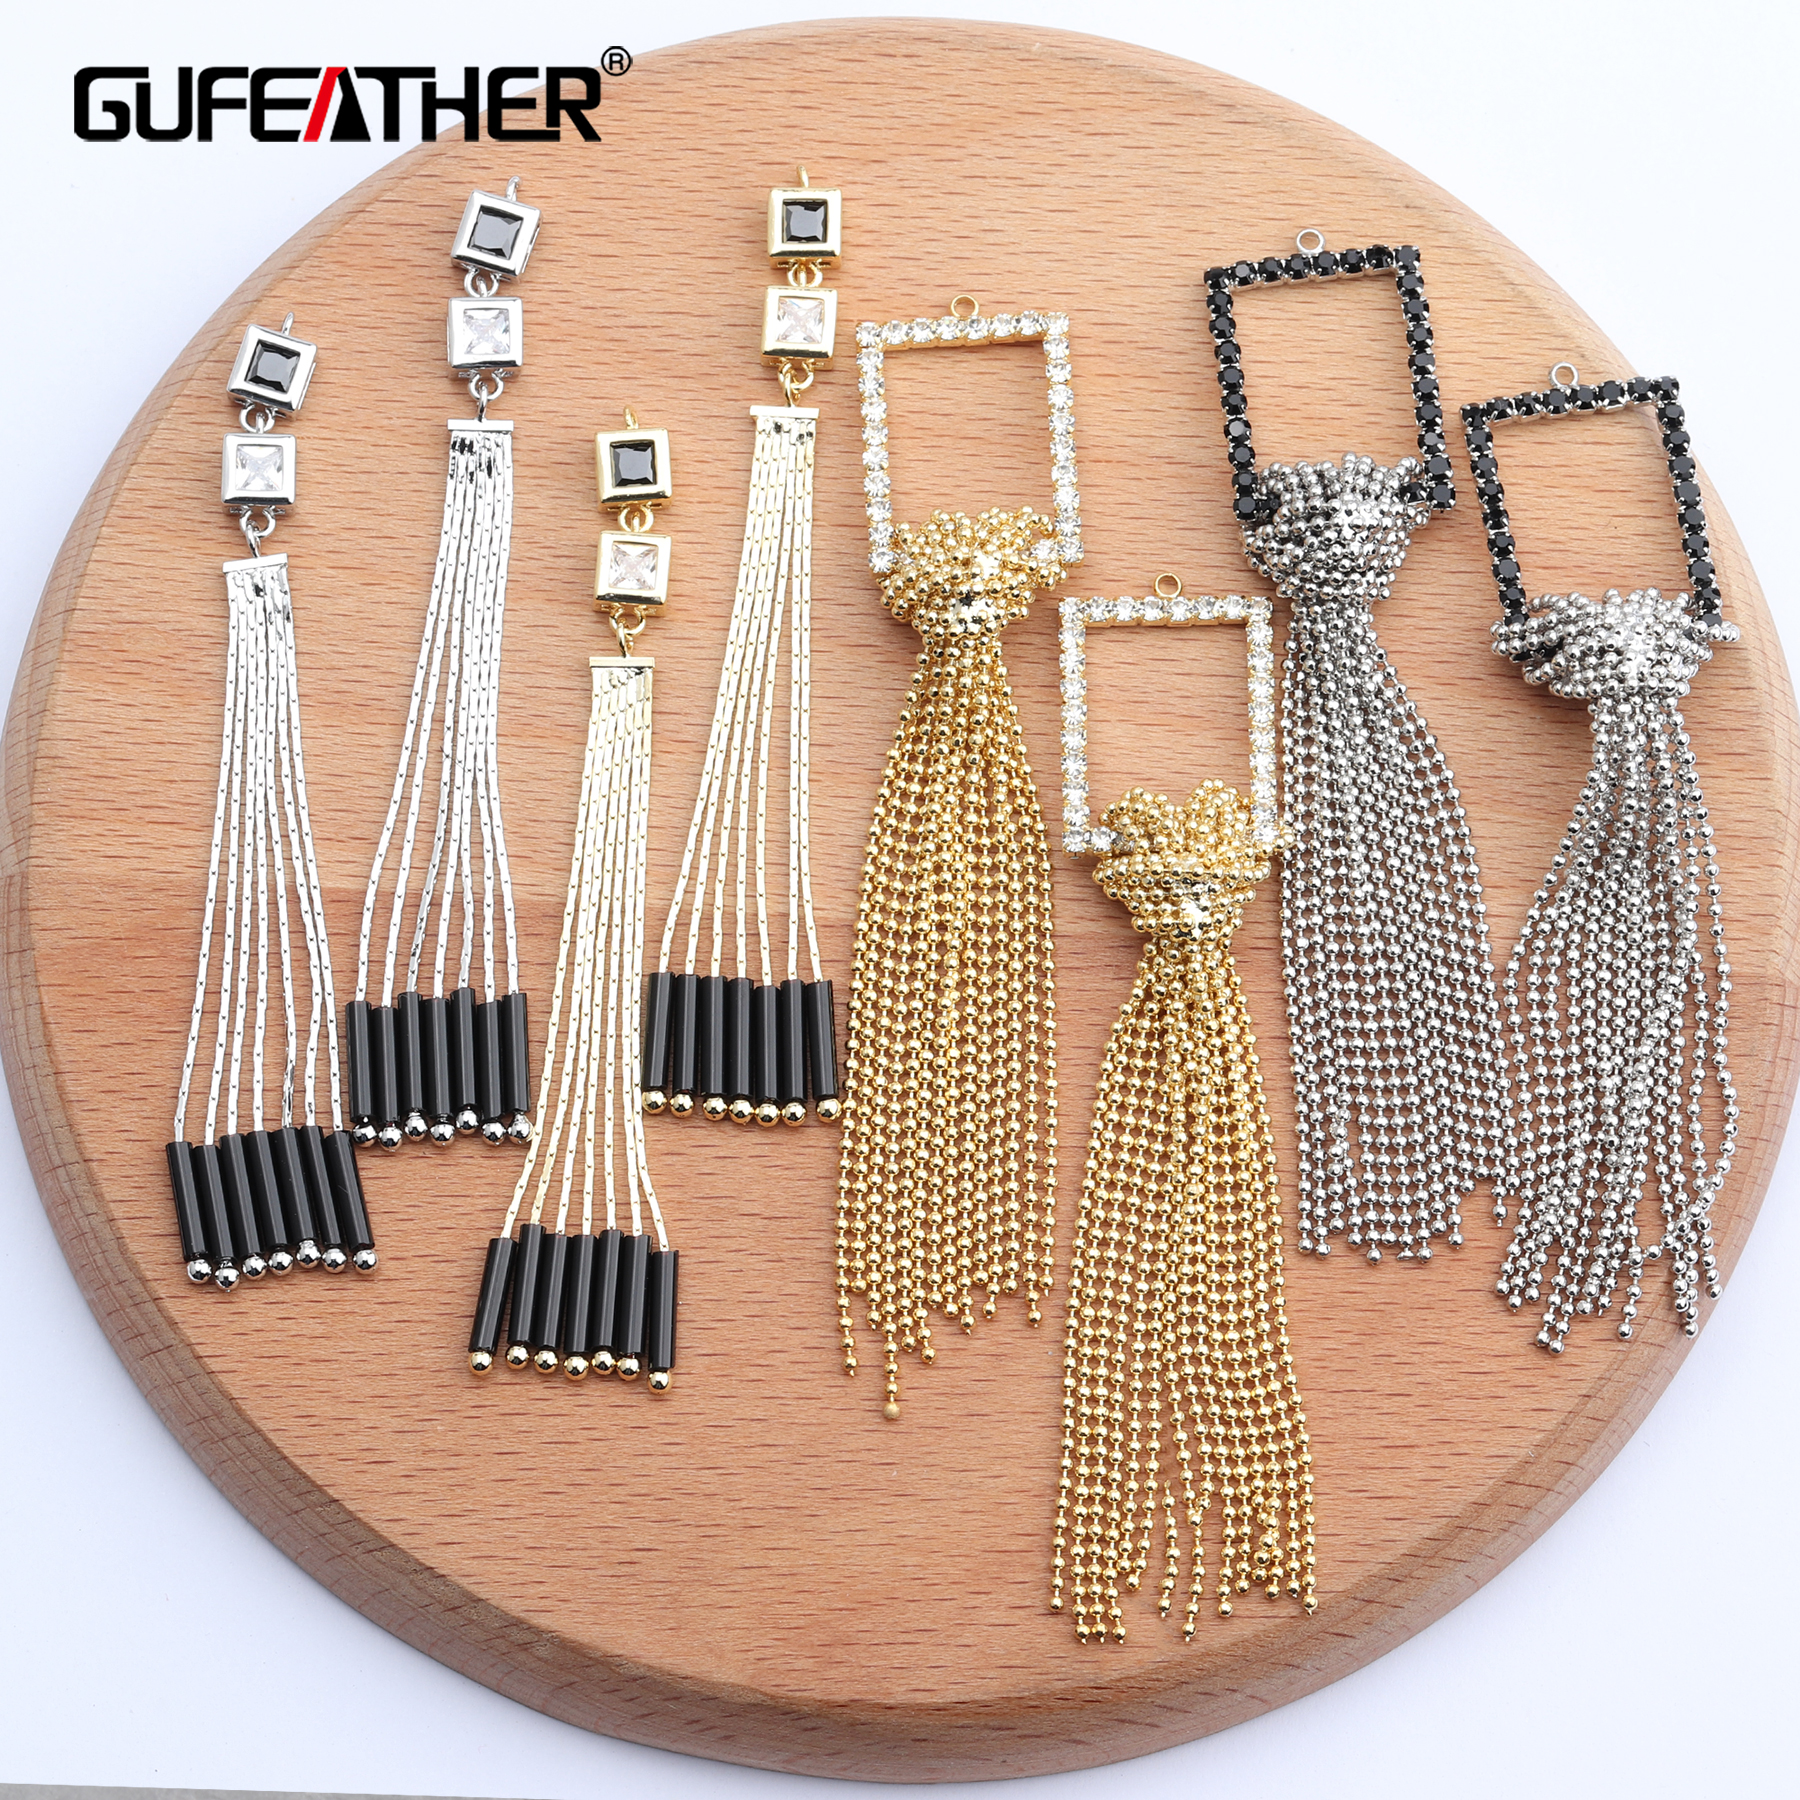 GUFEATHER M630,jewelry Making,jewelry Findings,diy Tassel Pendant,hand Made,18k Plated Gold,stable Quality,diy Earrings,4pcs/lot